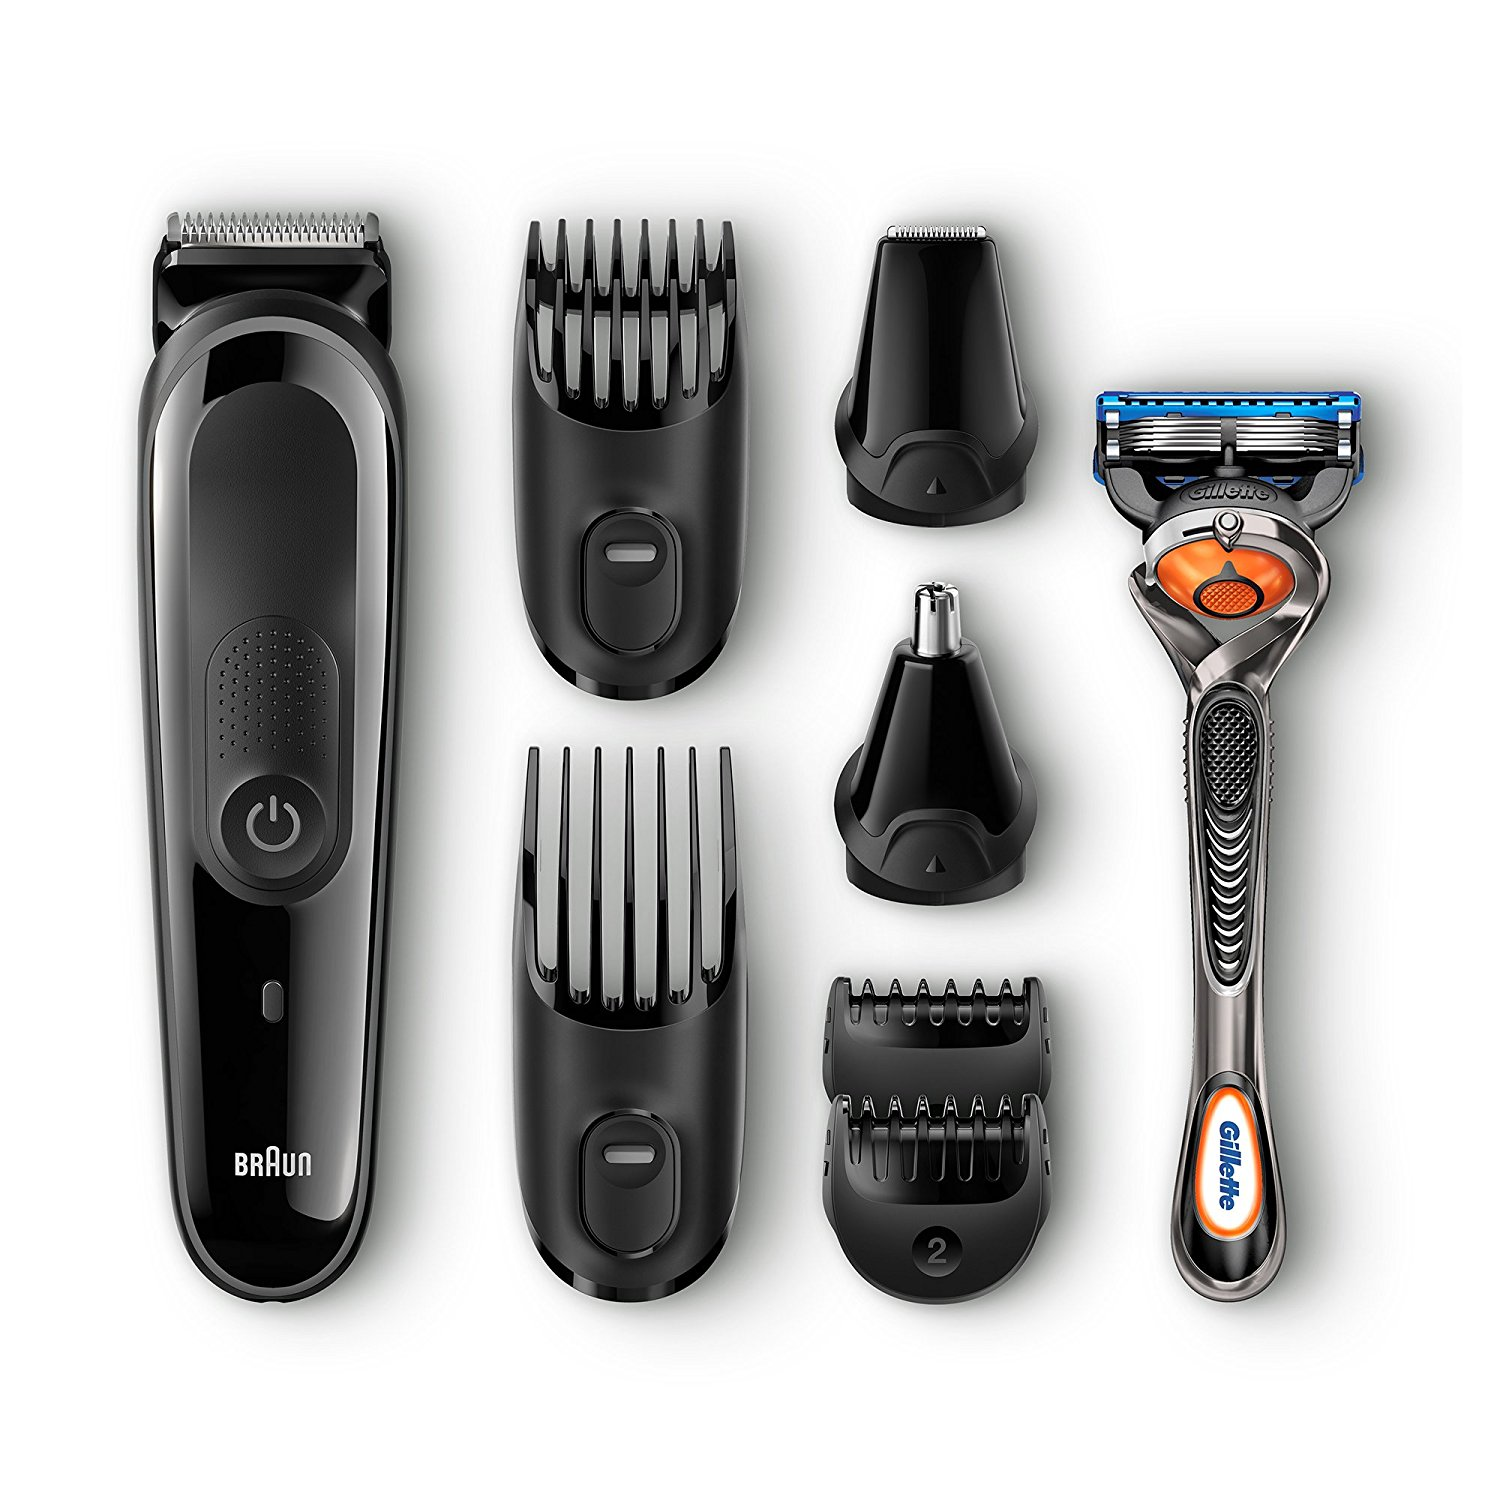 Braun Multi Grooming Kit – 8-in-One Precision Face and Head Trimming Kit